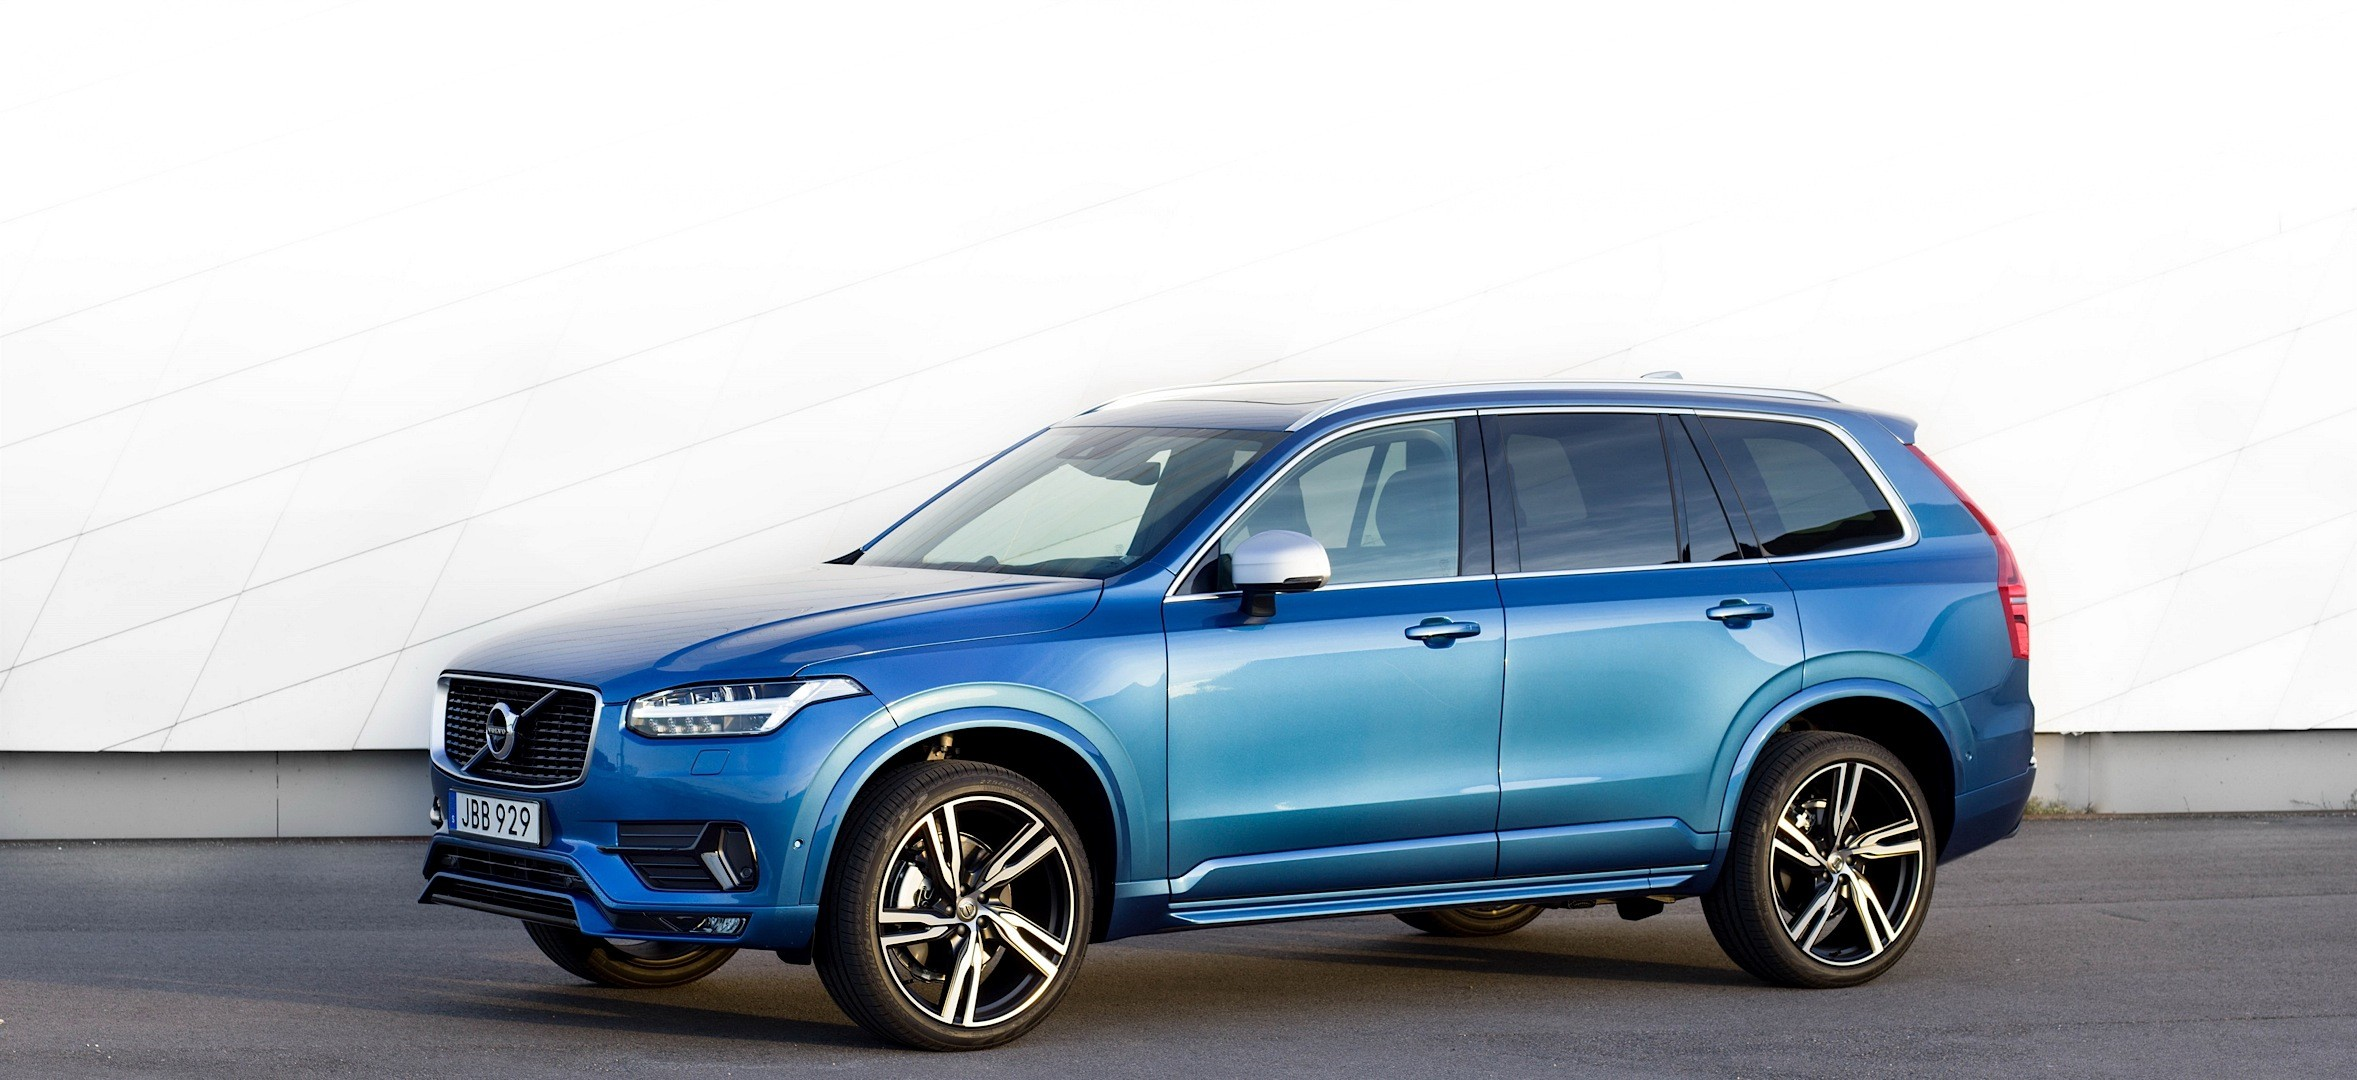 2016 volvo xc90 r design shows more aggressive design and. Black Bedroom Furniture Sets. Home Design Ideas